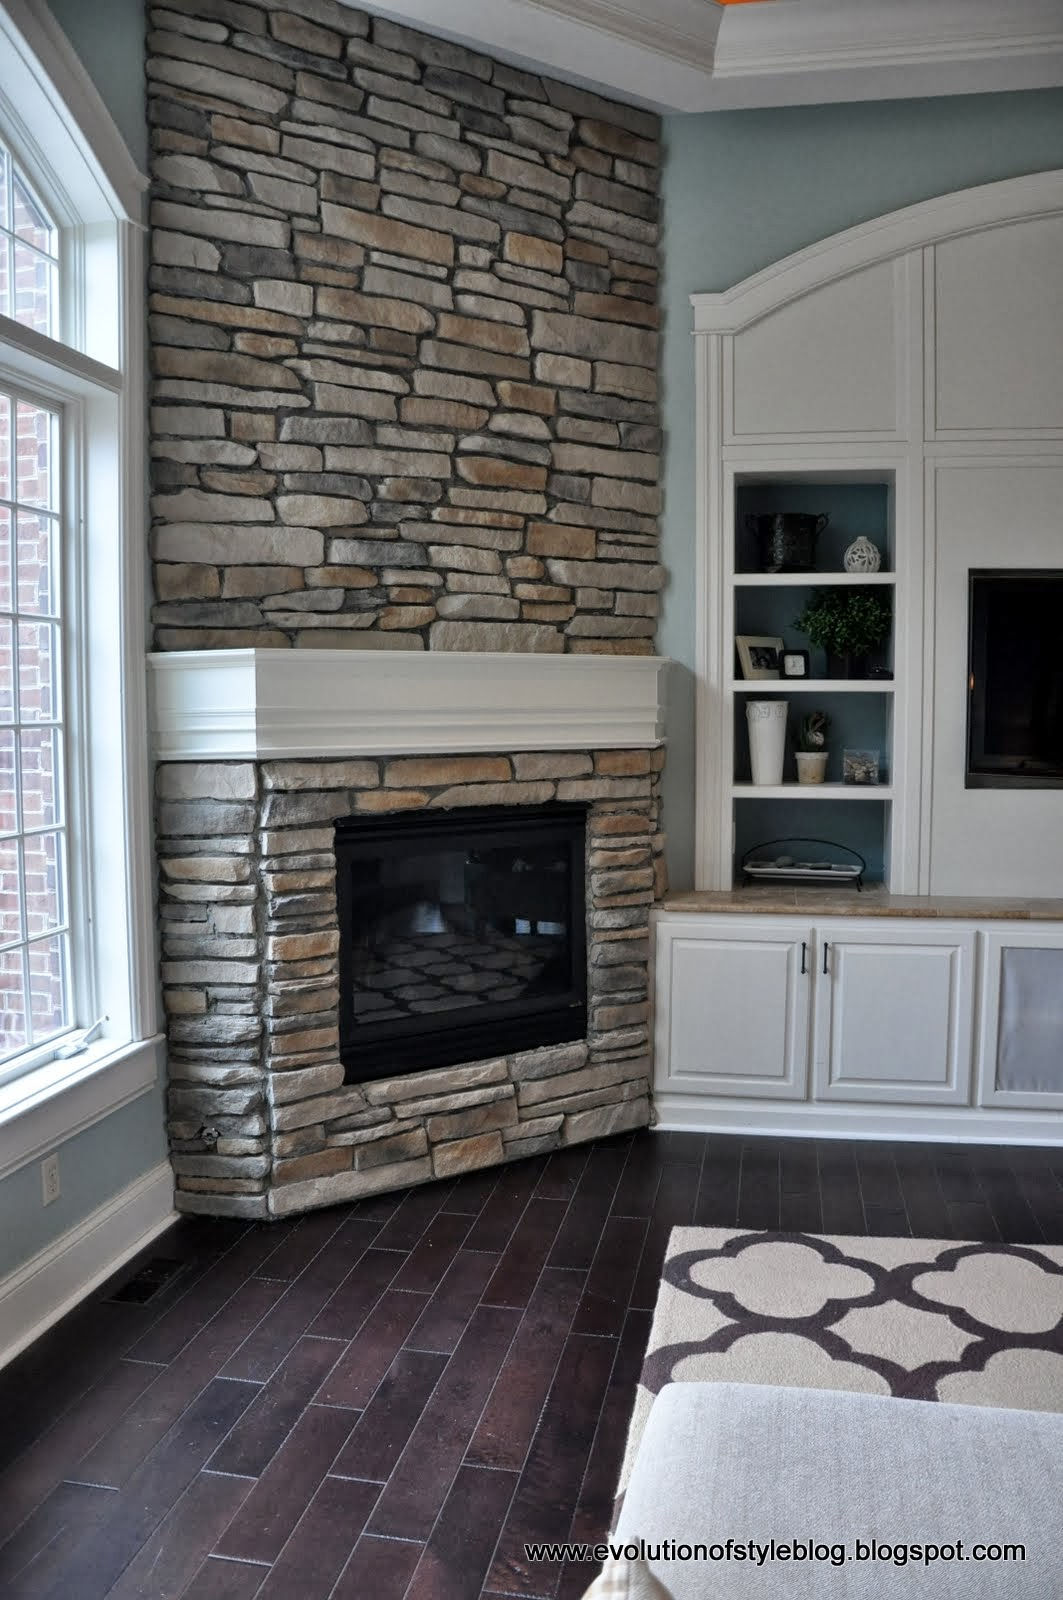 Diy stone fireplace reveal for real evolution of style for Building a corner fireplace